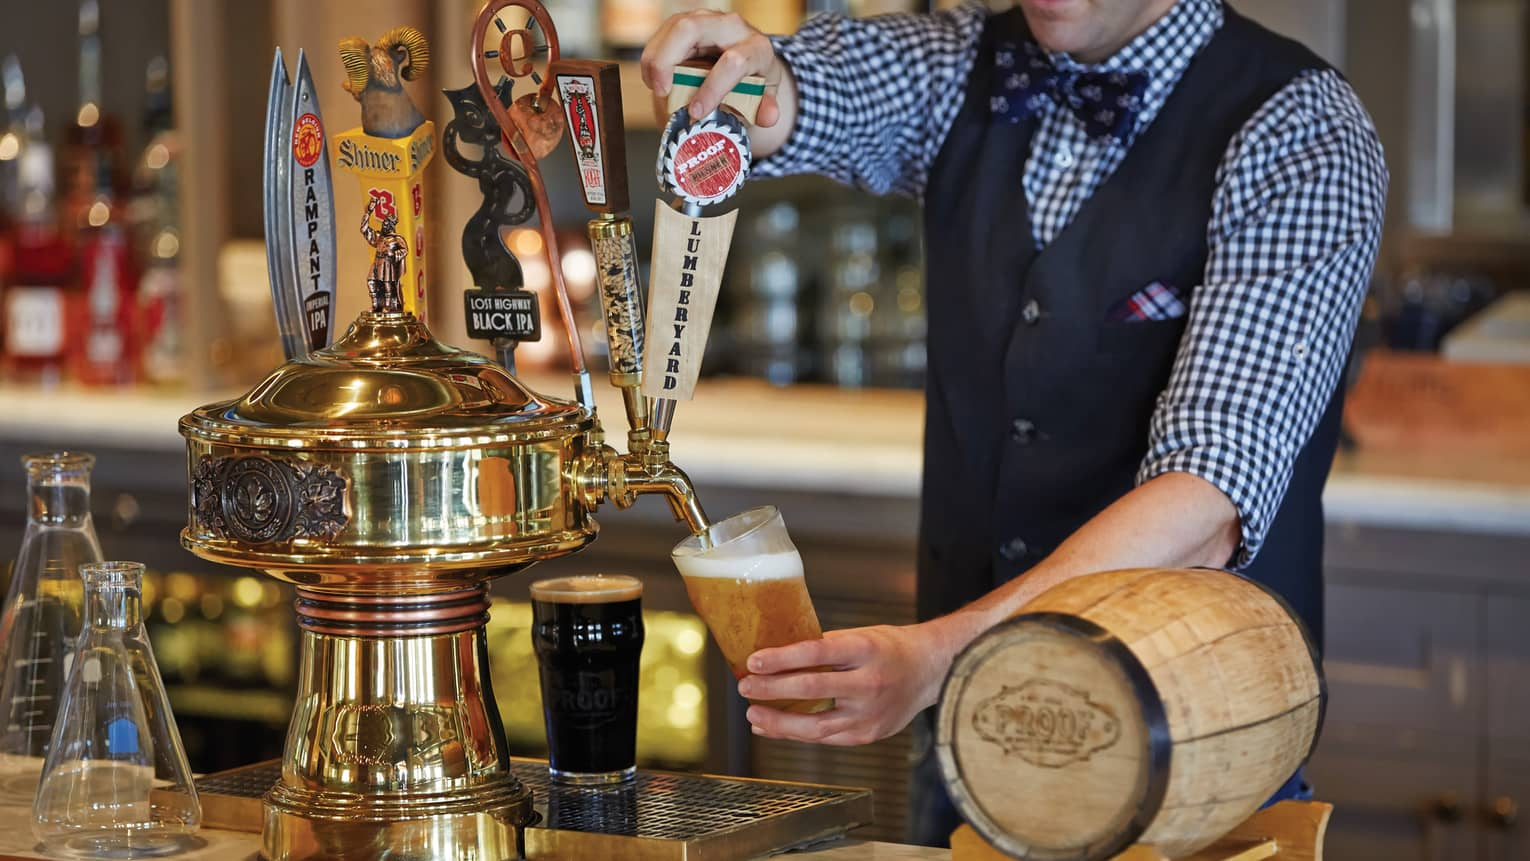 Bartender in vest, uniform pours beer into pint glass from taps at bar